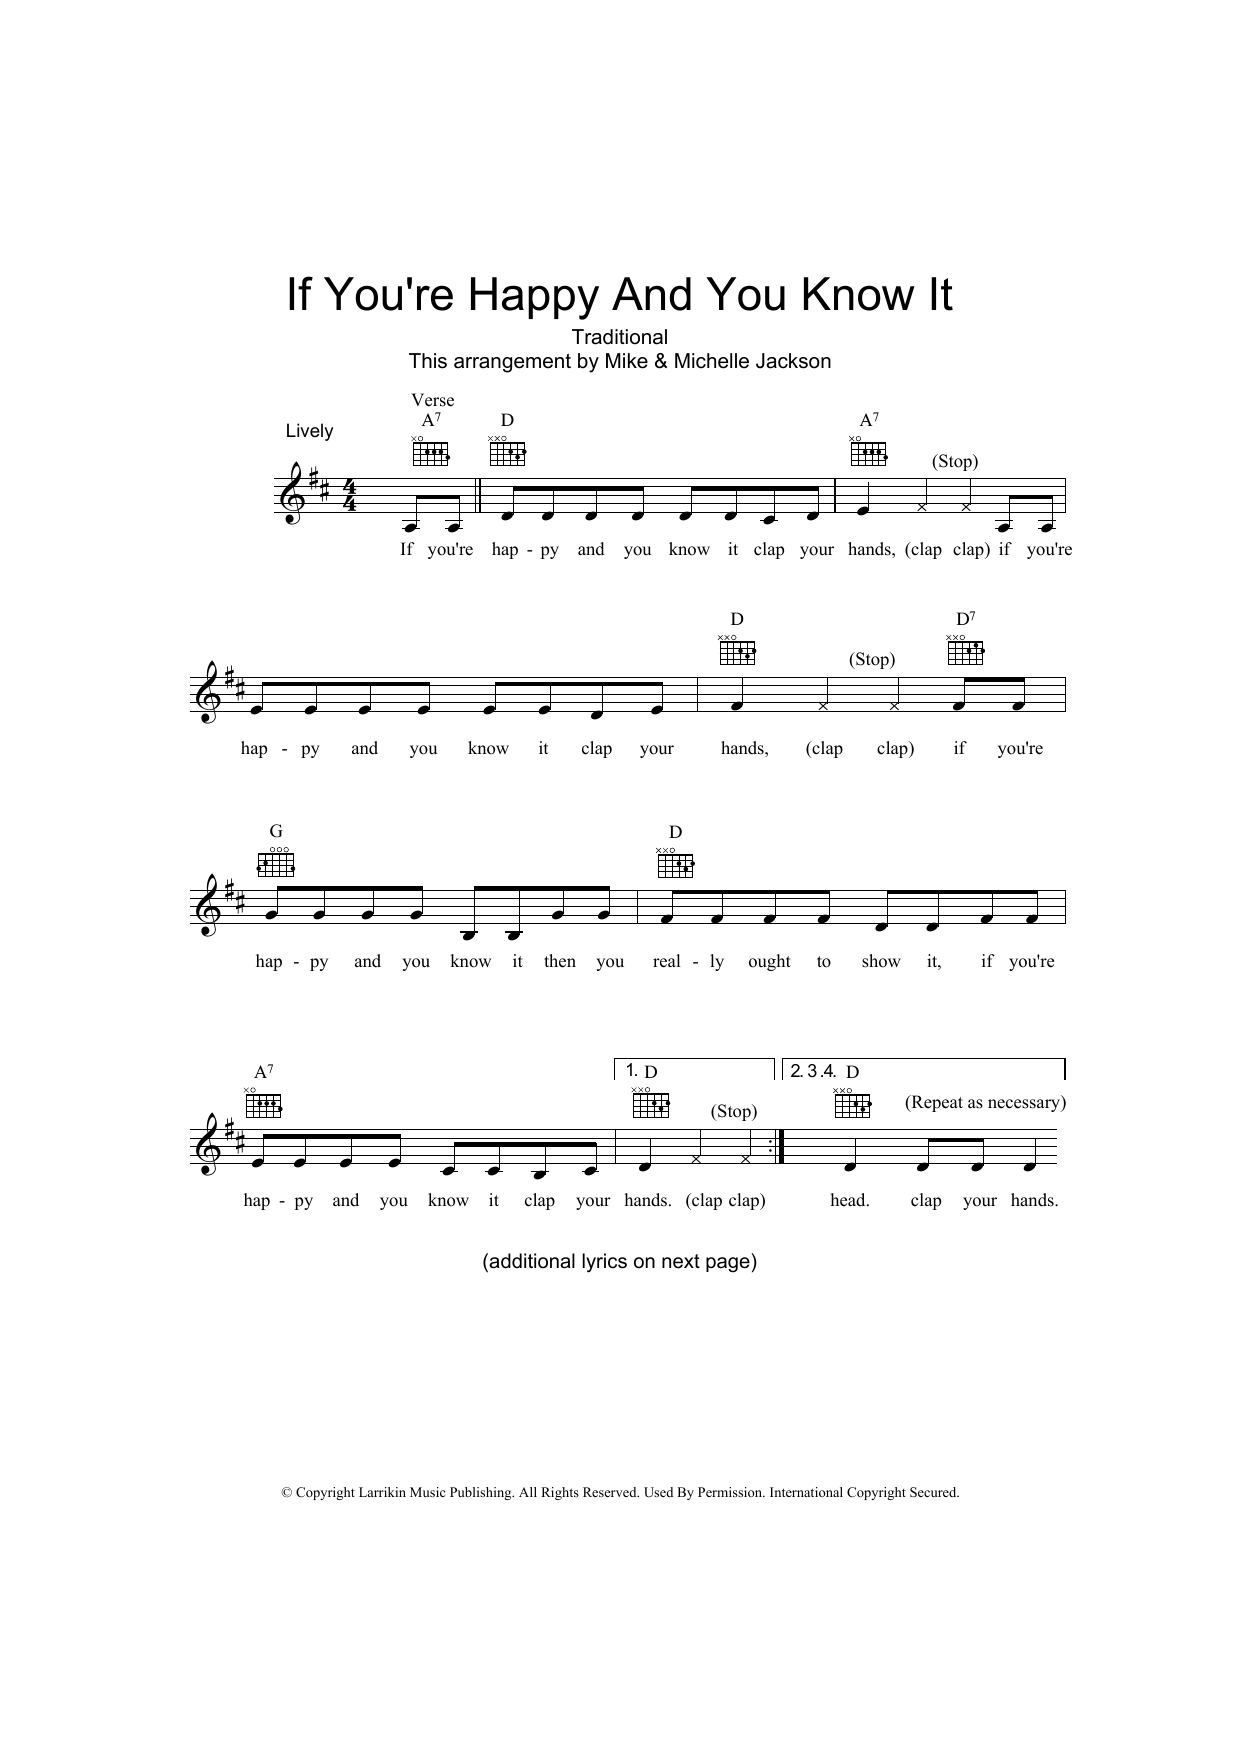 Traditional - If You're Happy And You Know It